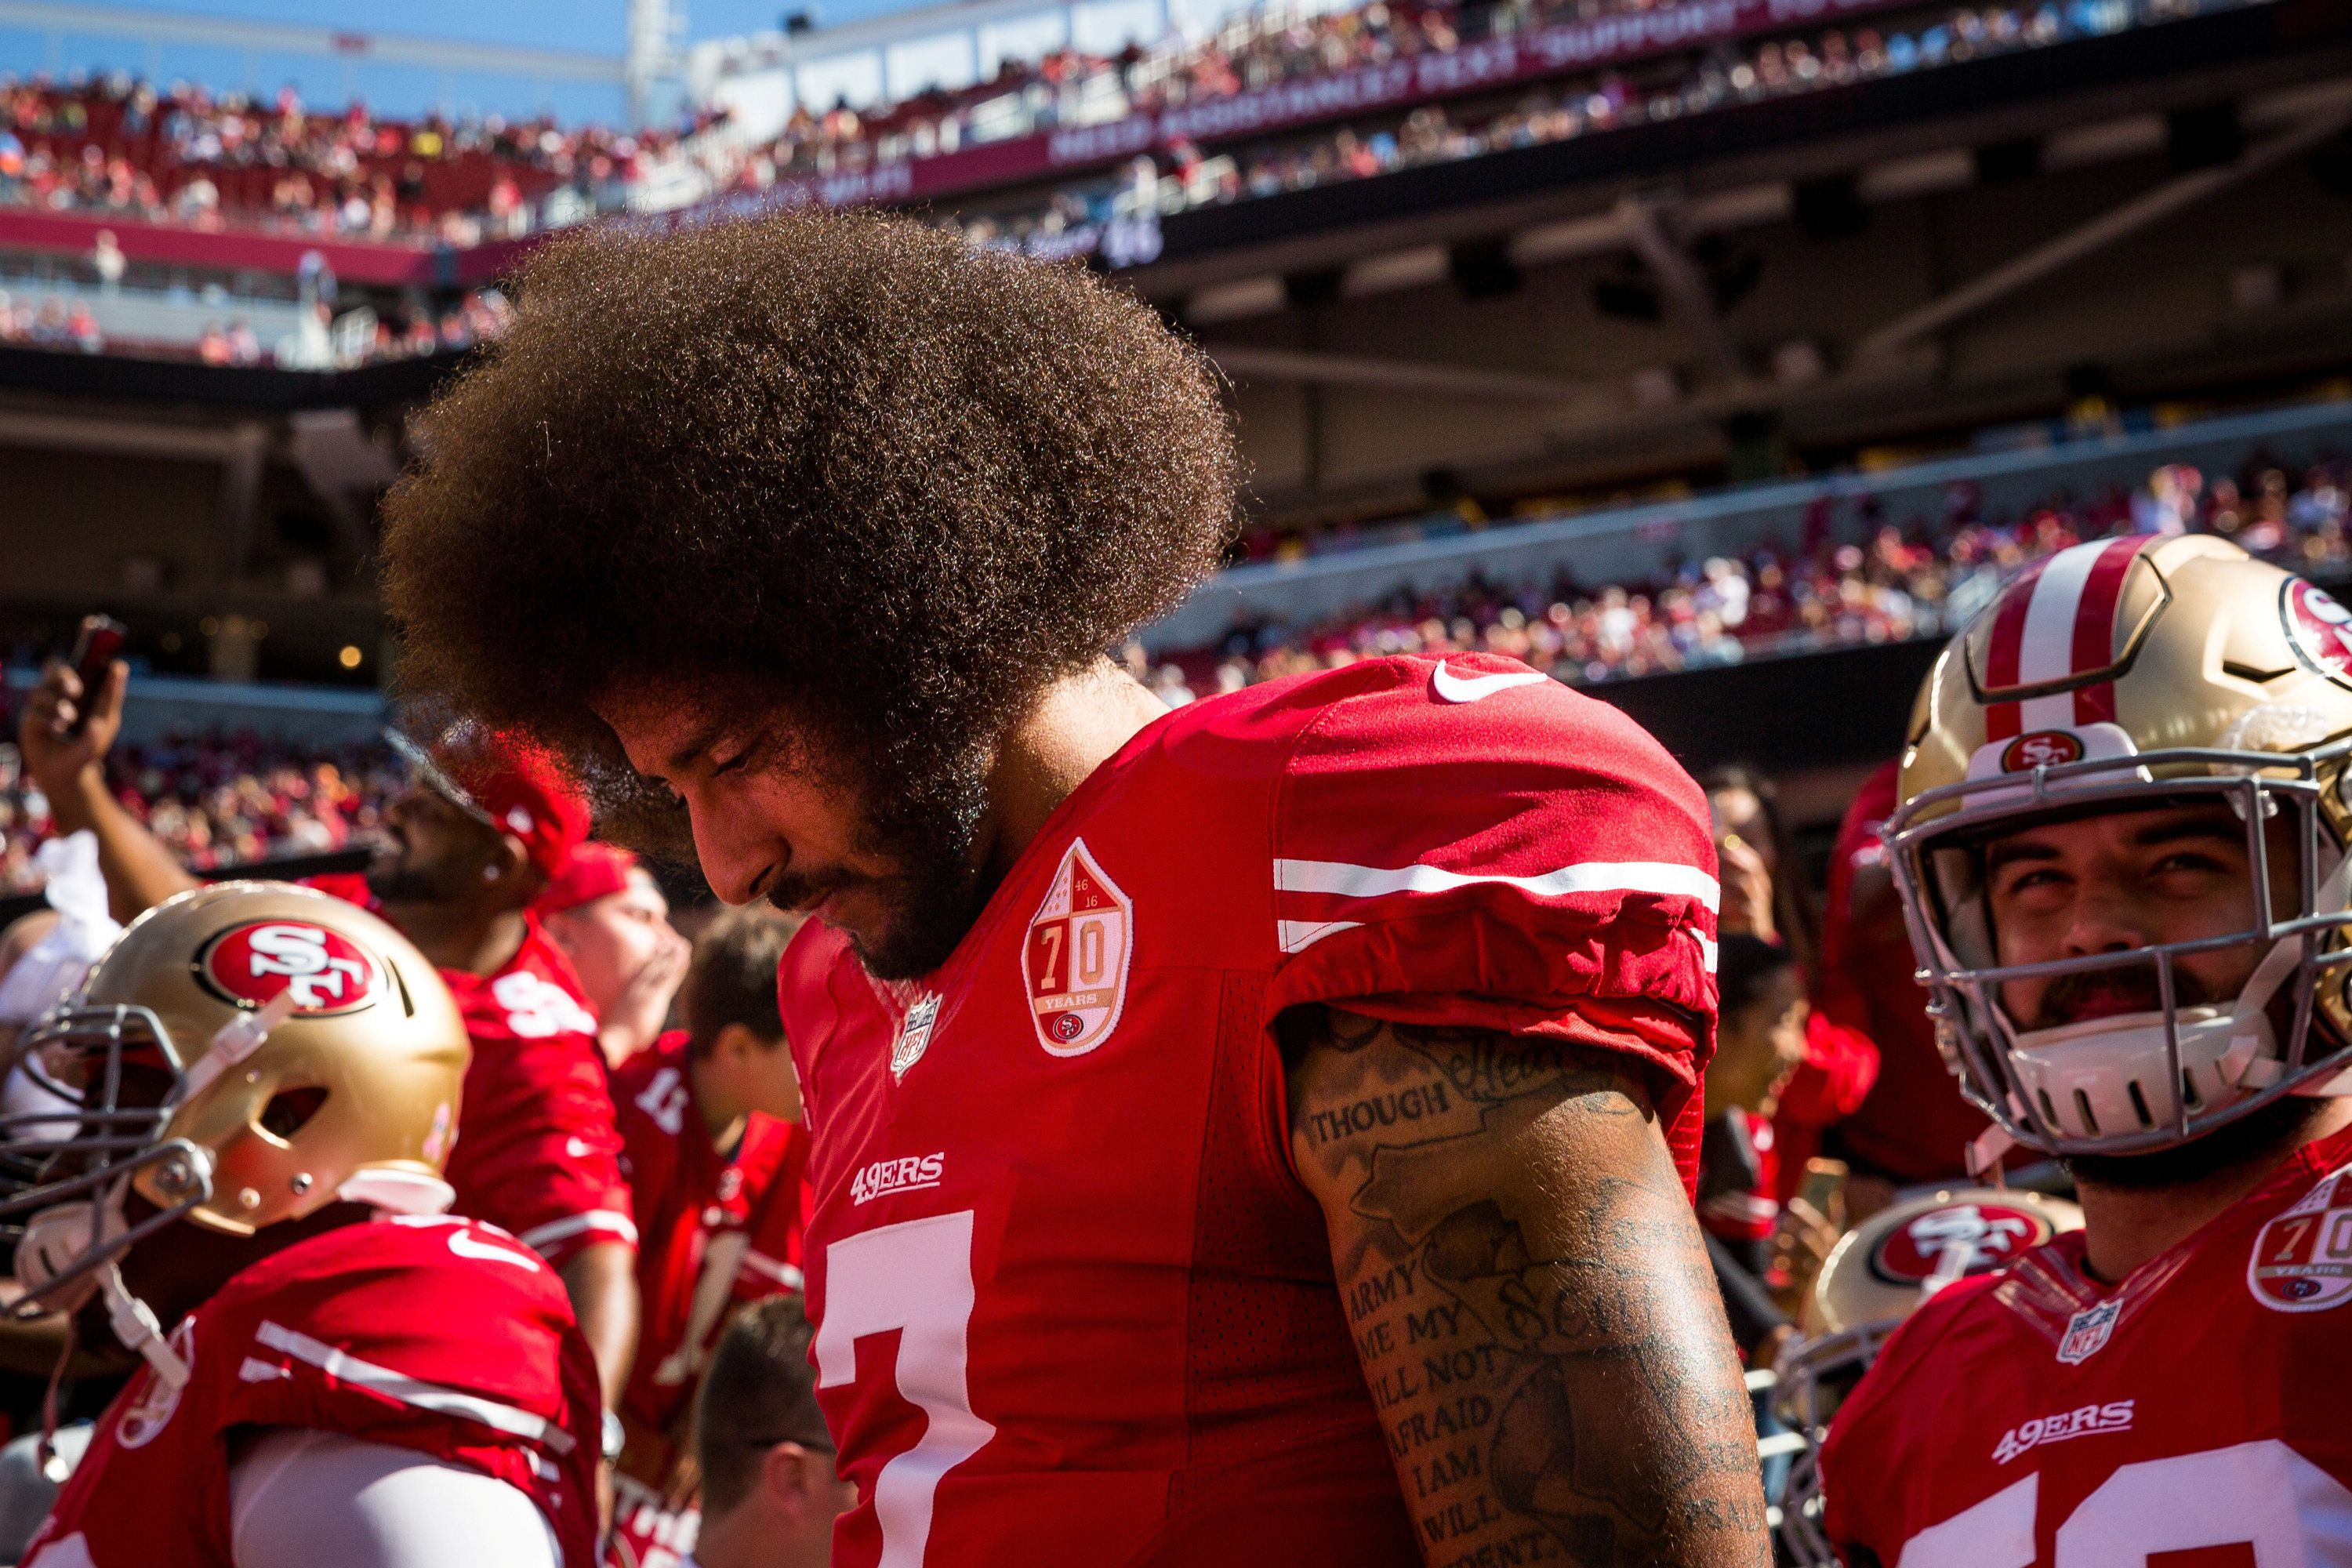 Colin Kaepernick helped launch the take-a-knee protests against police brutality and other racial injustice during